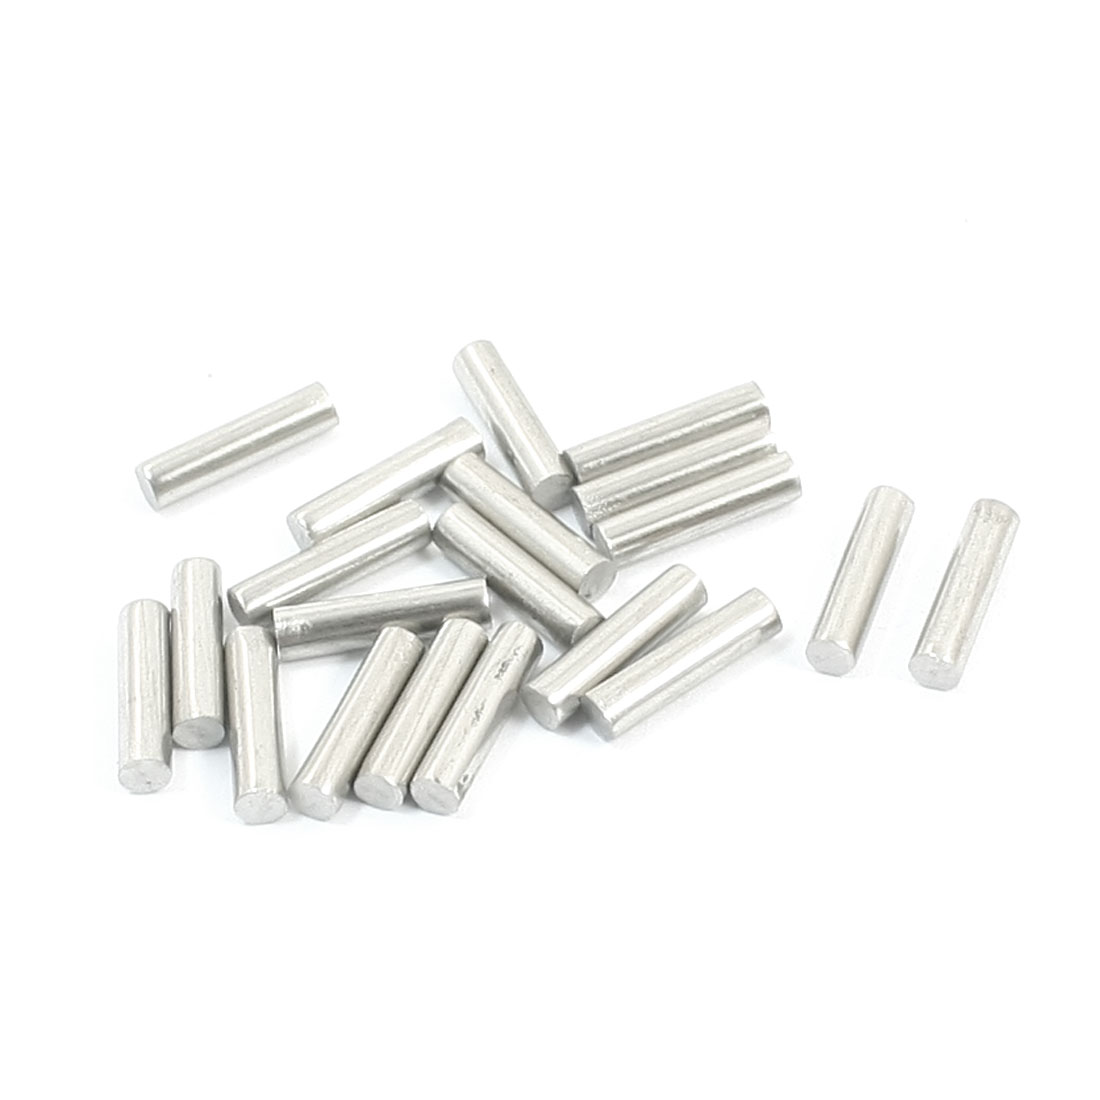 20pcs Silver Tone Stainless Steel 10 x 2.5mm Round Rod Axle for Boat Toys